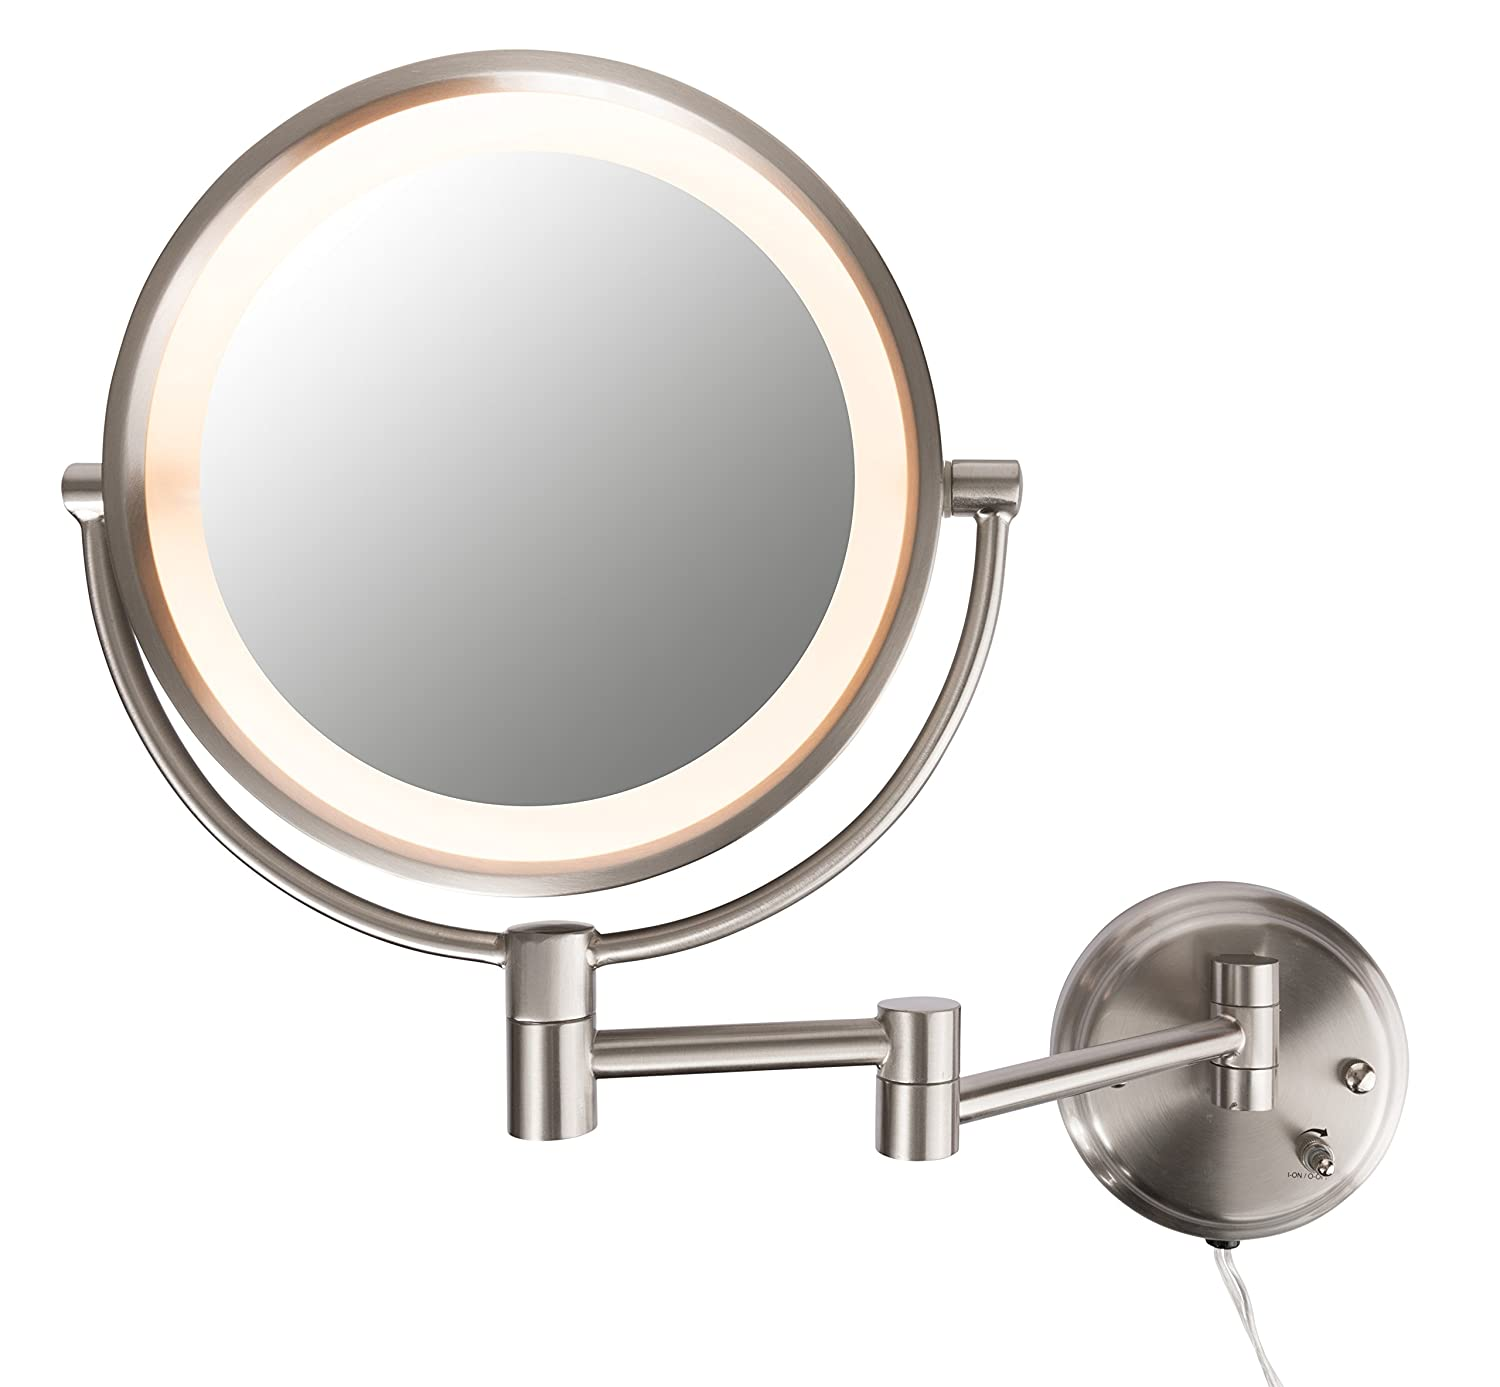 10x Lighted Wall Mounted Makeup Mirror